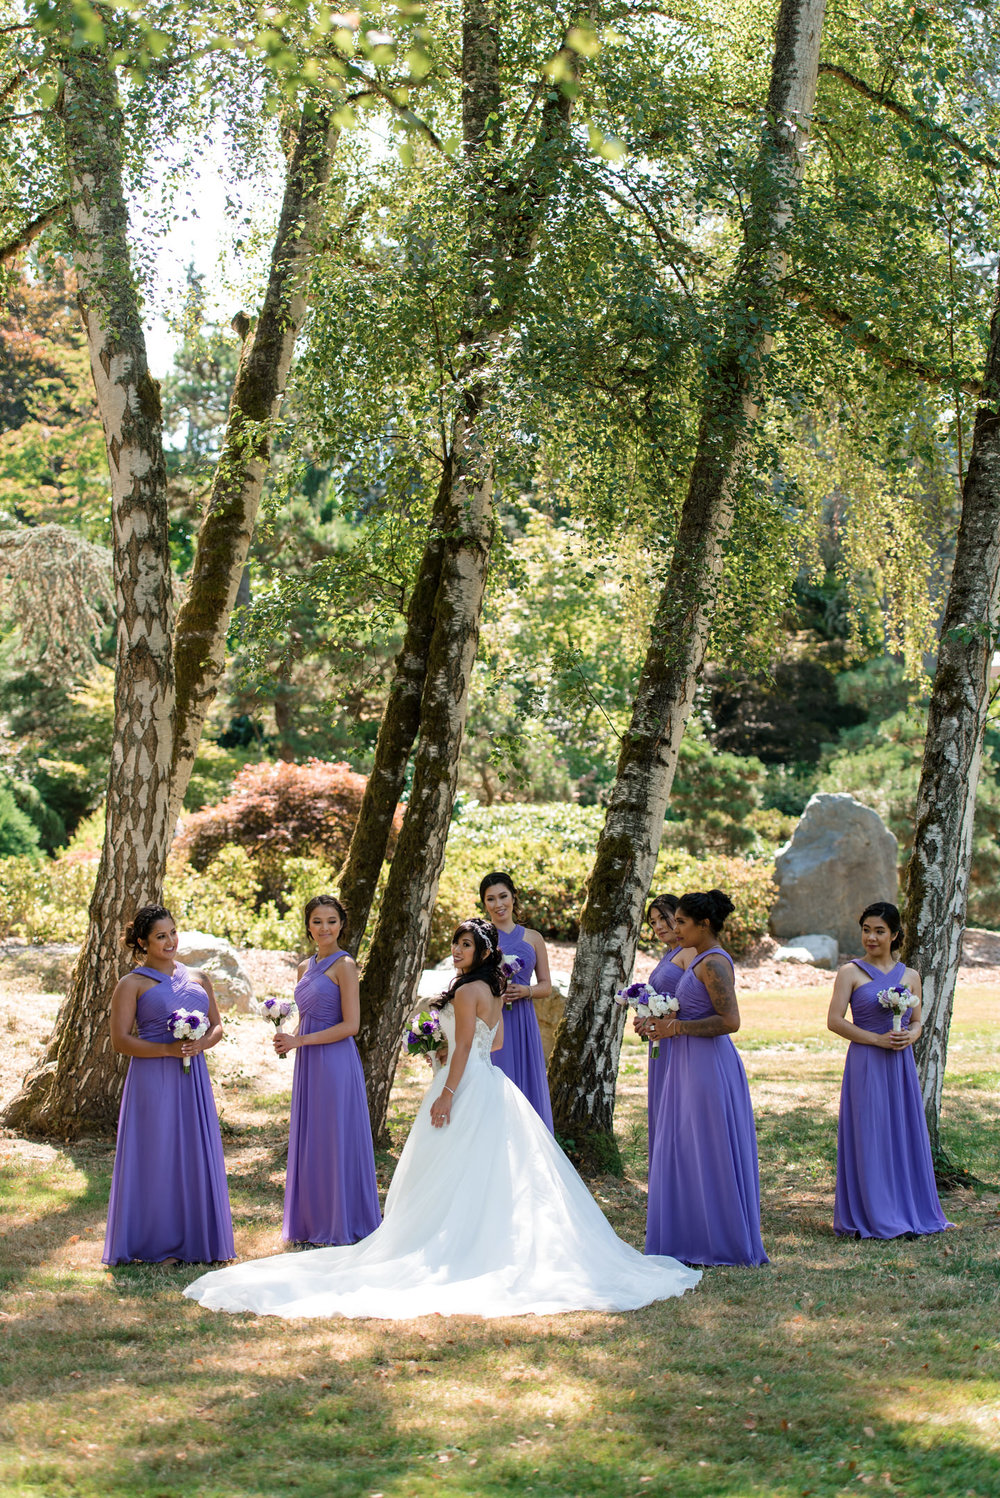 Asian Bride and Bridesmaids Outdoor Wedding Portrait at Kubota G